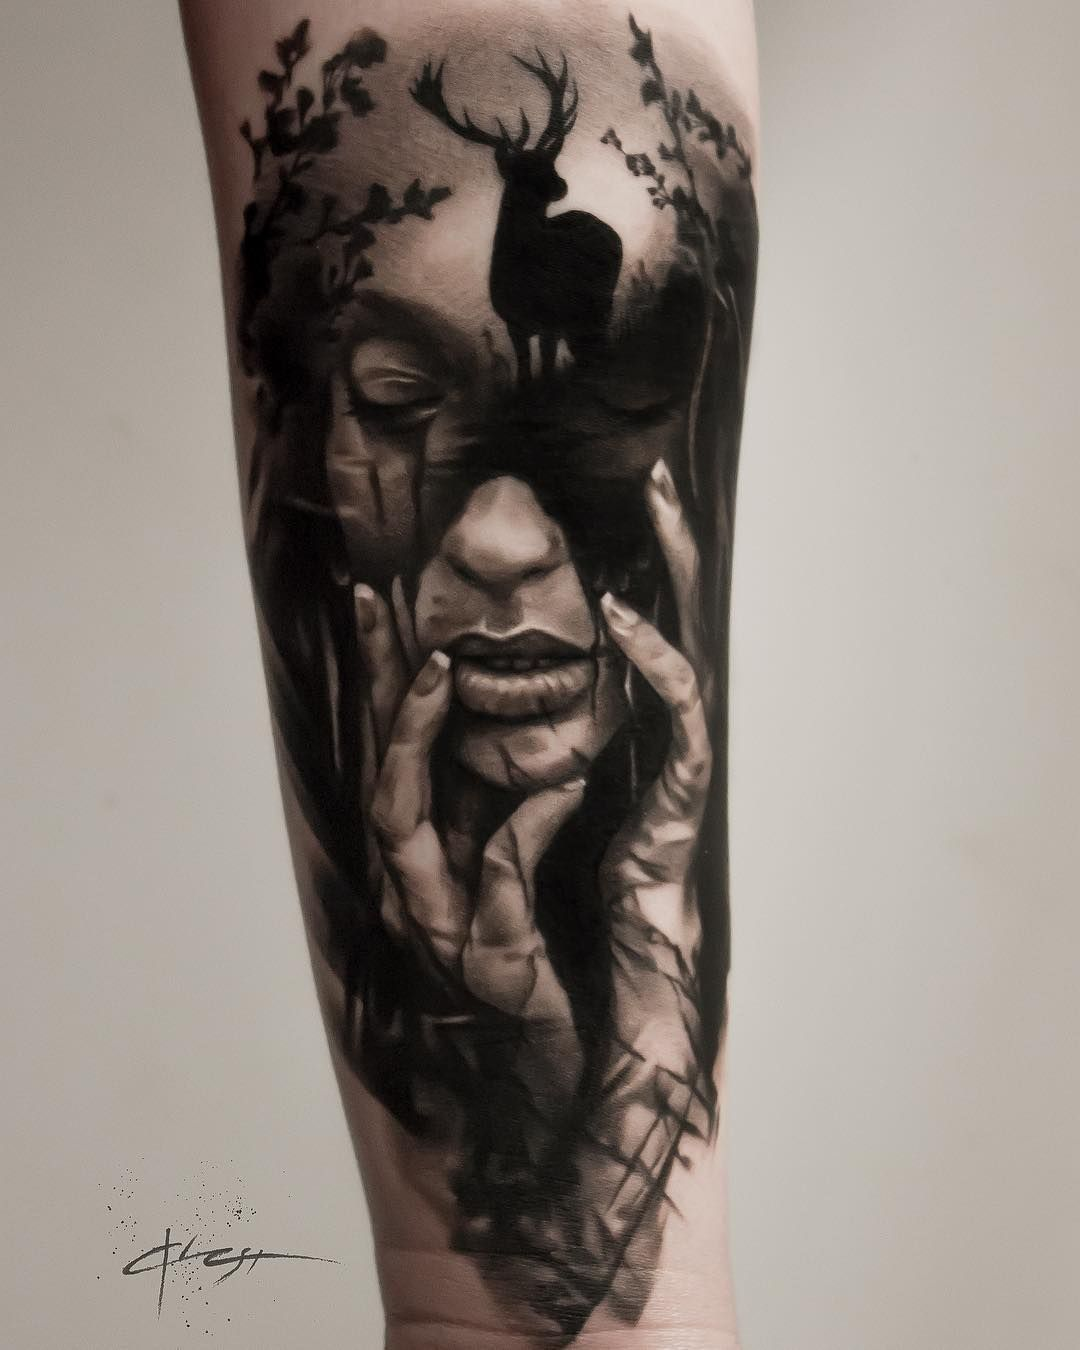 Tattoo Design Woman Face: Amazing Girl Face And Deer Black And Gray Tattoo Design On